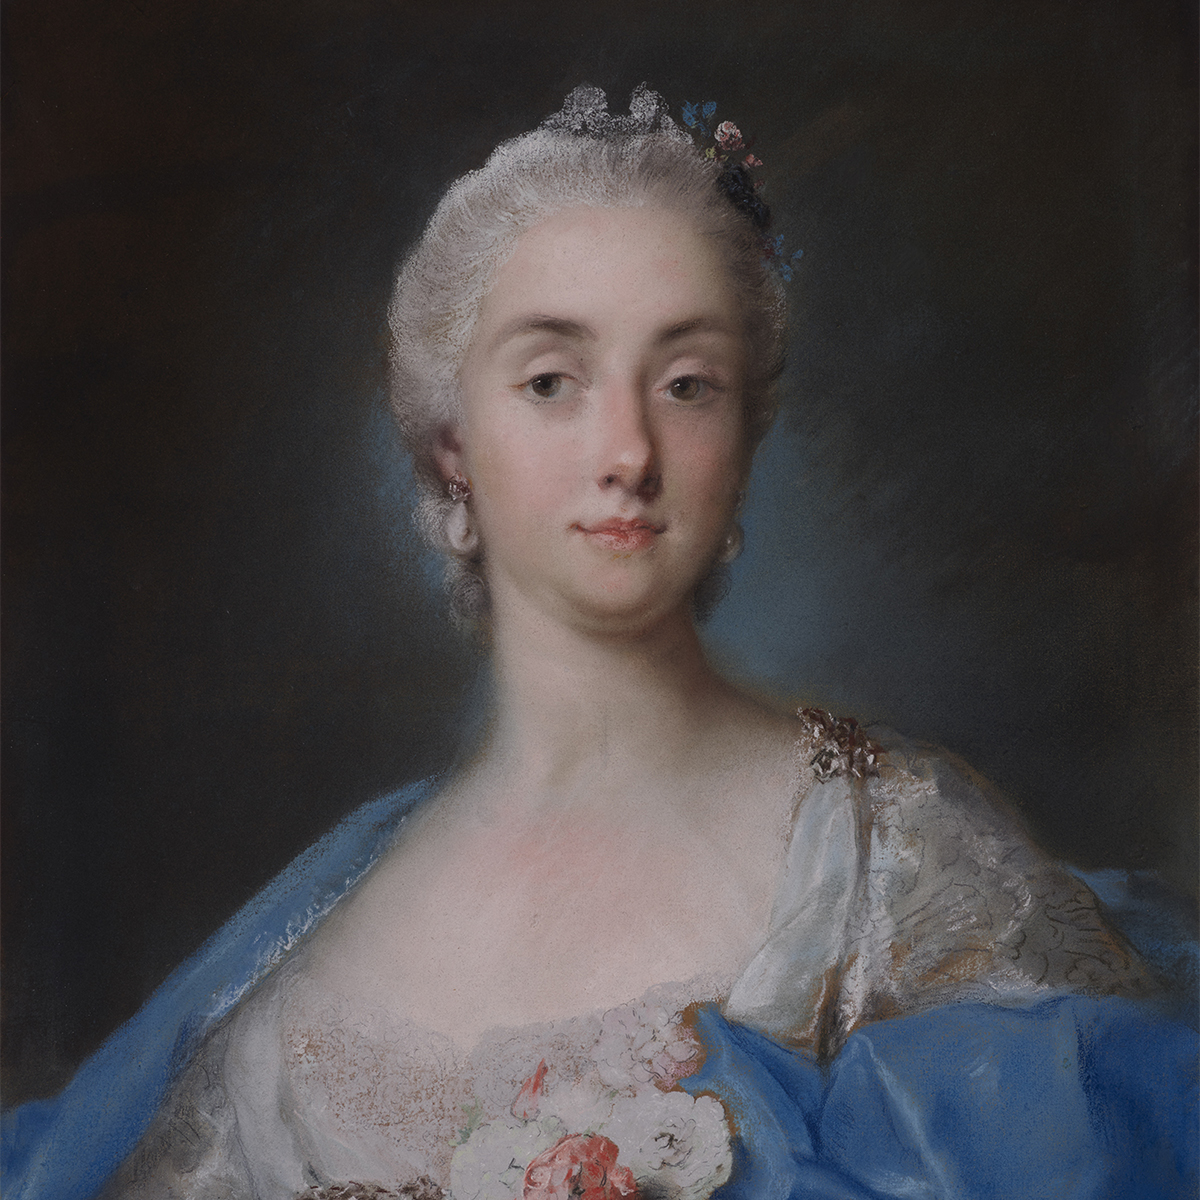 Pastel half-length portrait of a woman wearing a white dress with a collection of flowers at the front and a blue shawl draped on her shoulders.